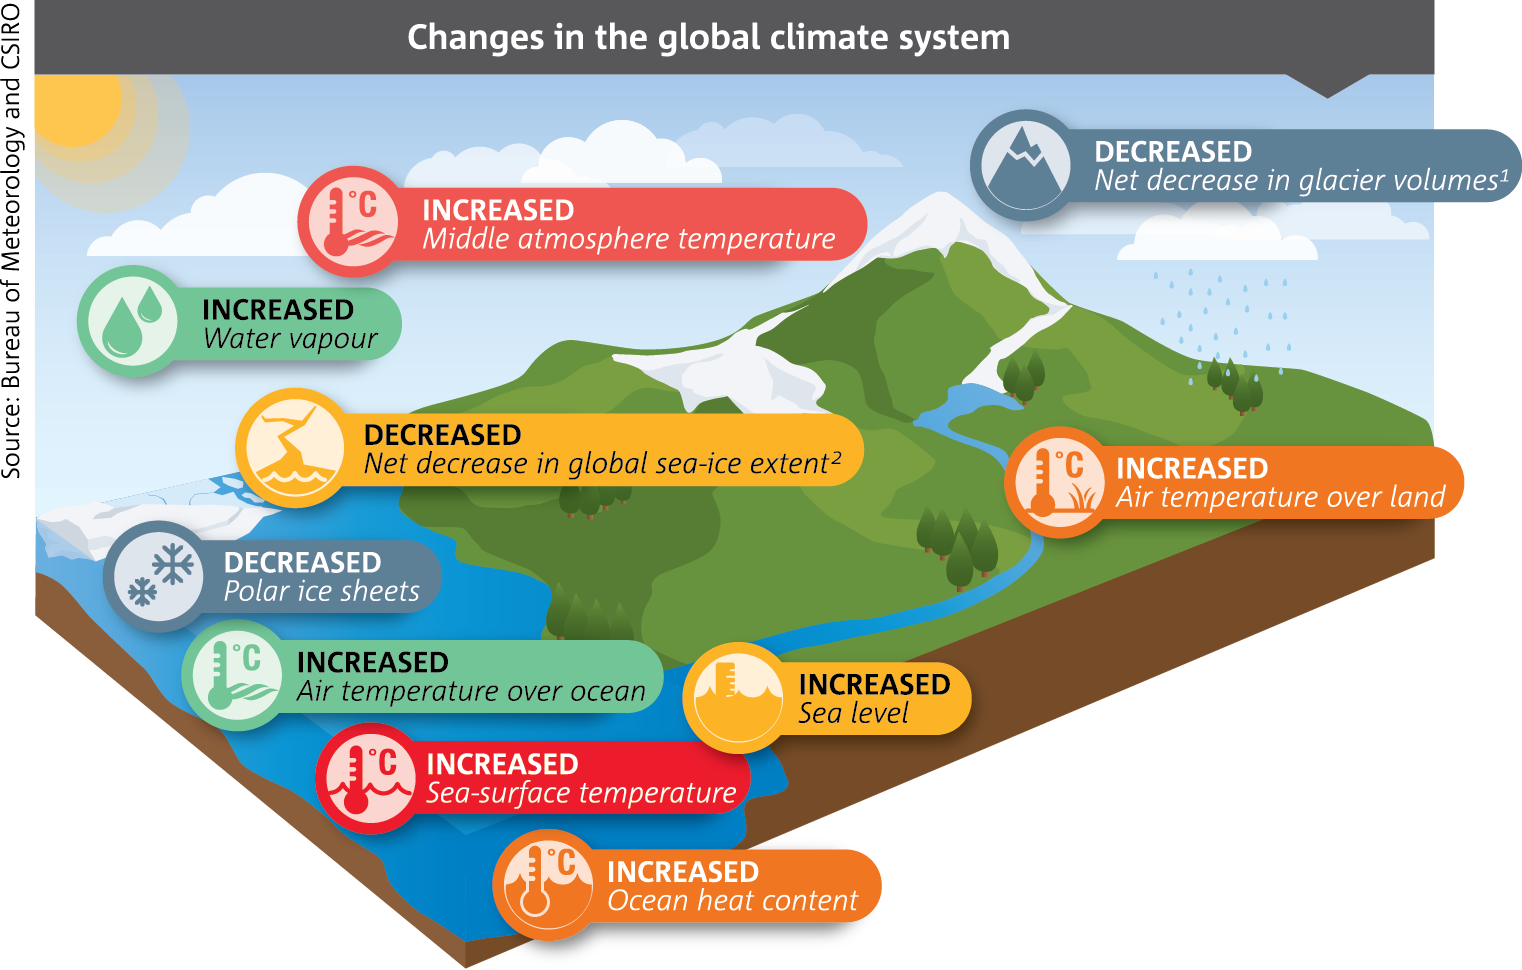 the worldwide issues of the climate changes Climate change economics (cce) specifically devoted to the papers in the area of climate change economics and also focuses on the theoretical and empirical papers devoted to analyses of mitigation, adaptation, impacts, and other issues related to the policy and management of greenhouse gases.